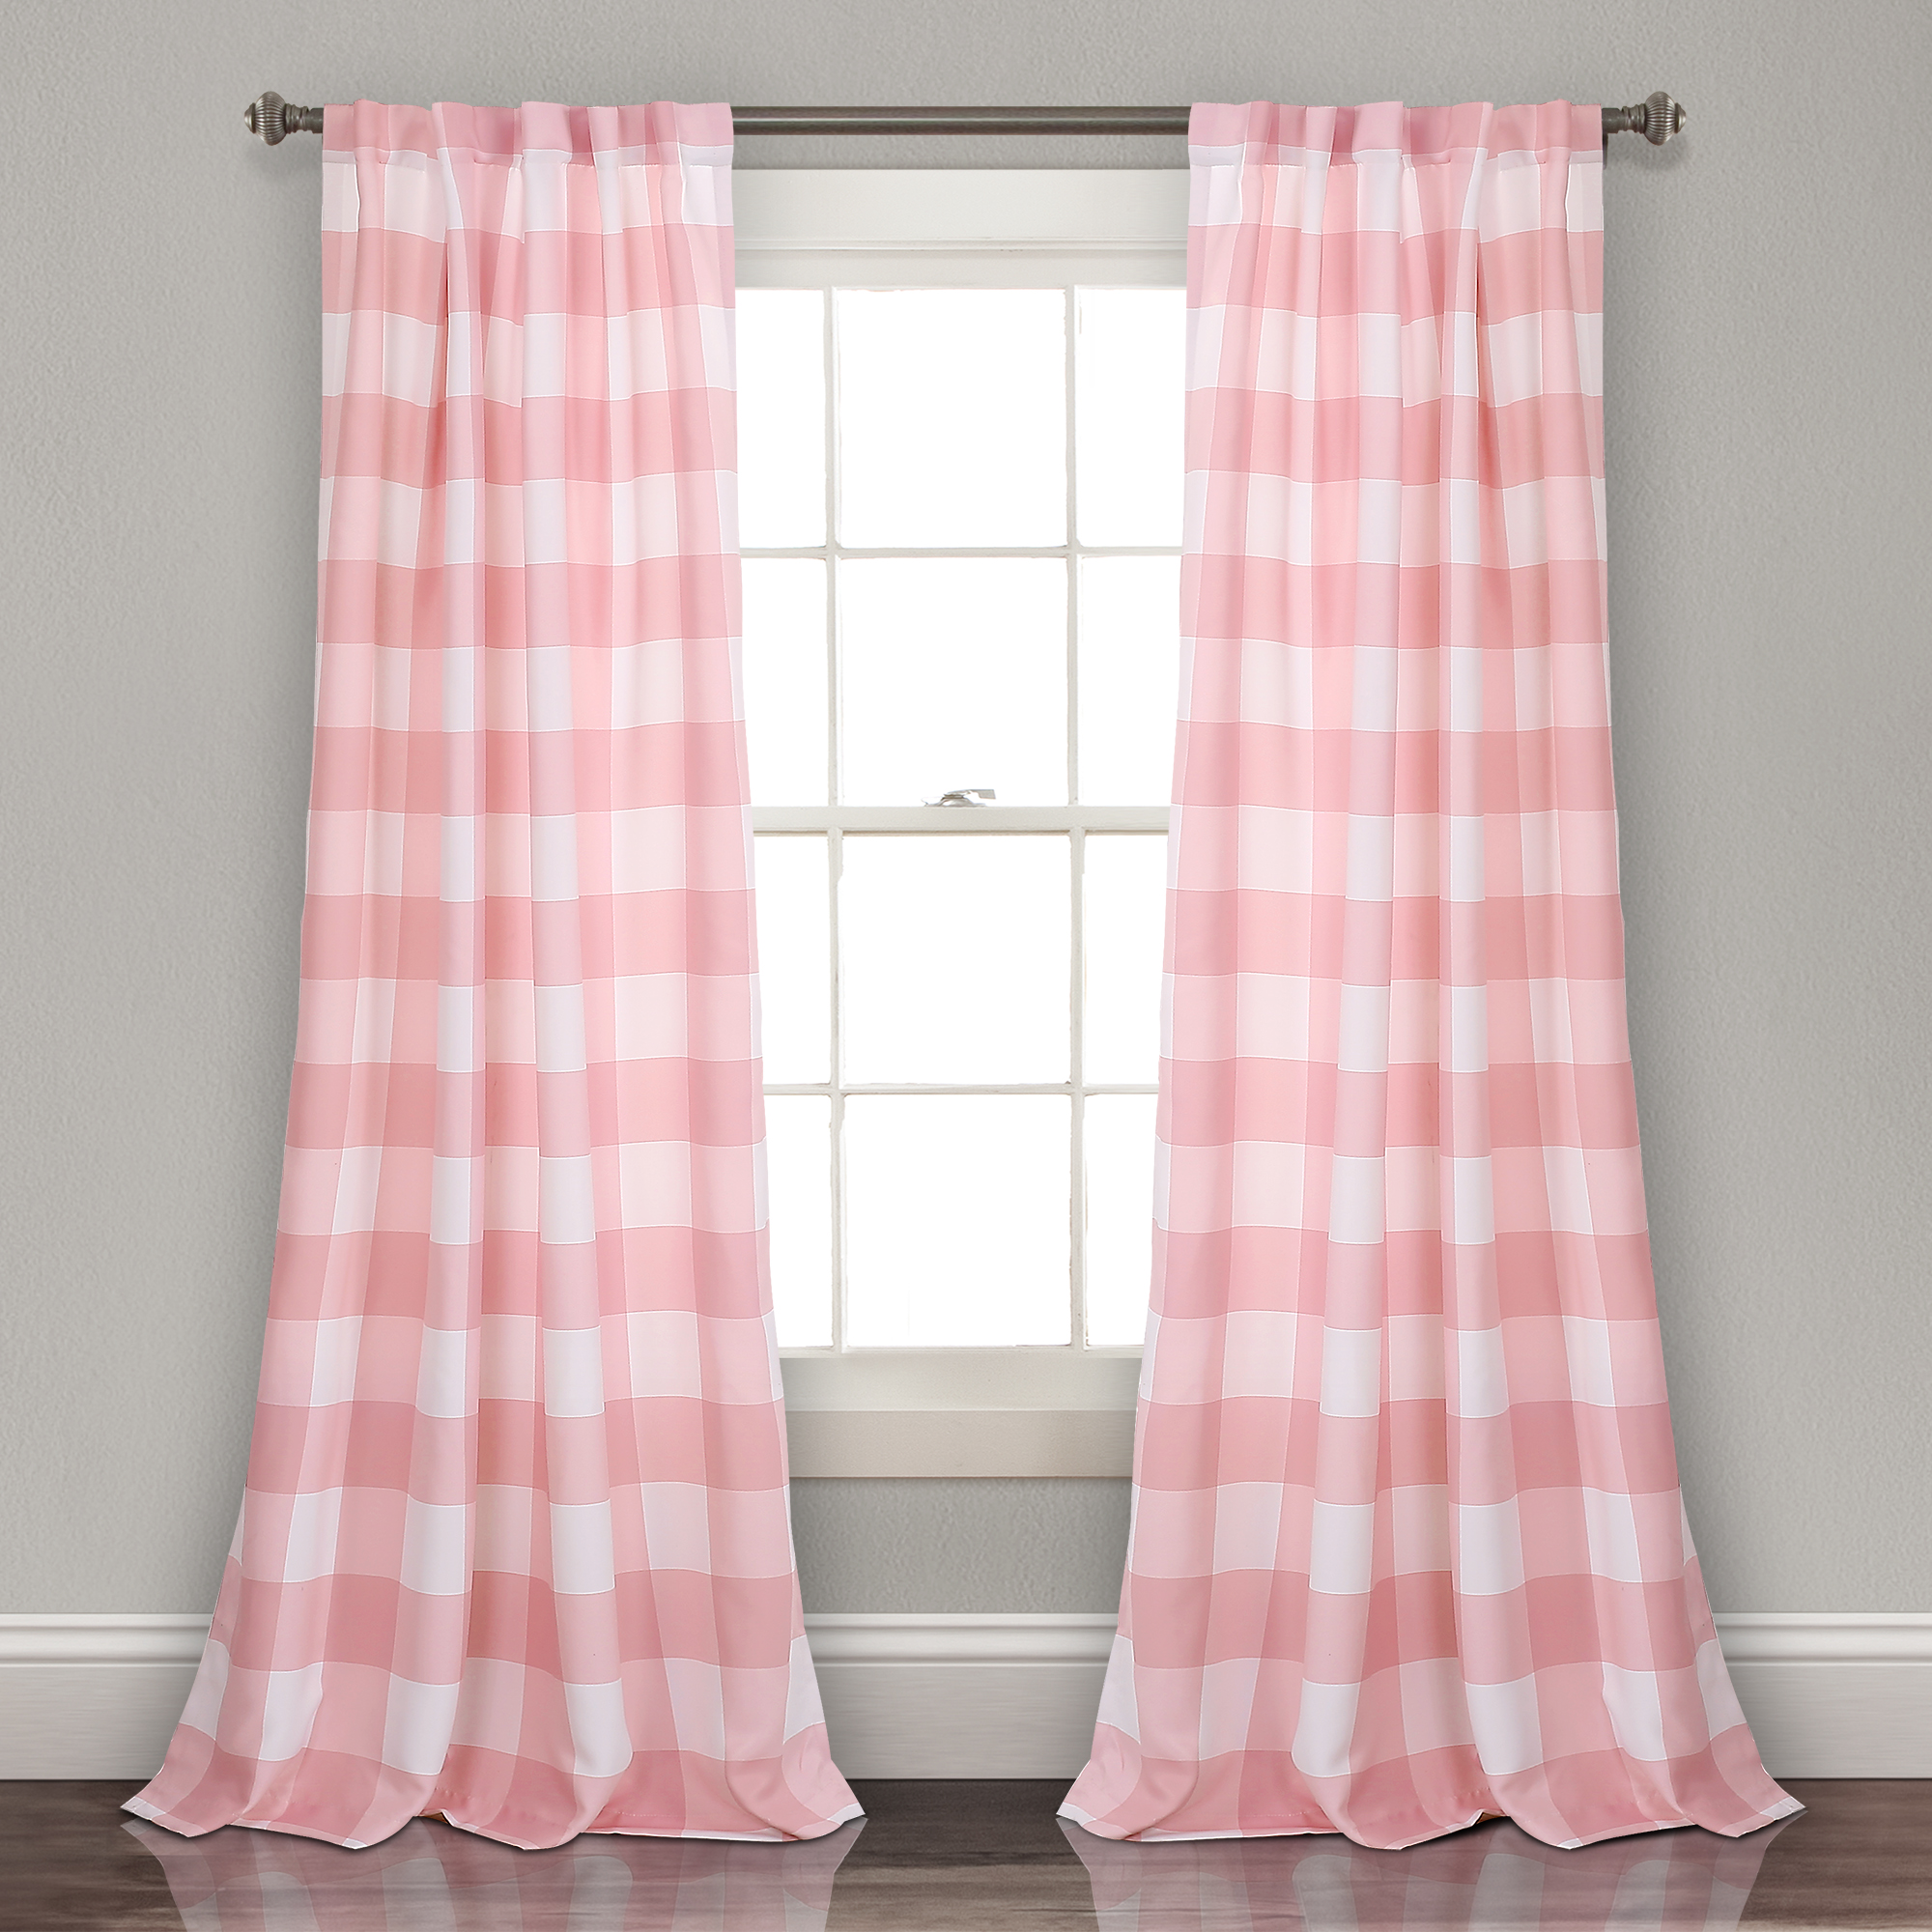 Kelly Checker Room Darkening Window Curtain Panels Pink 52x84 Set